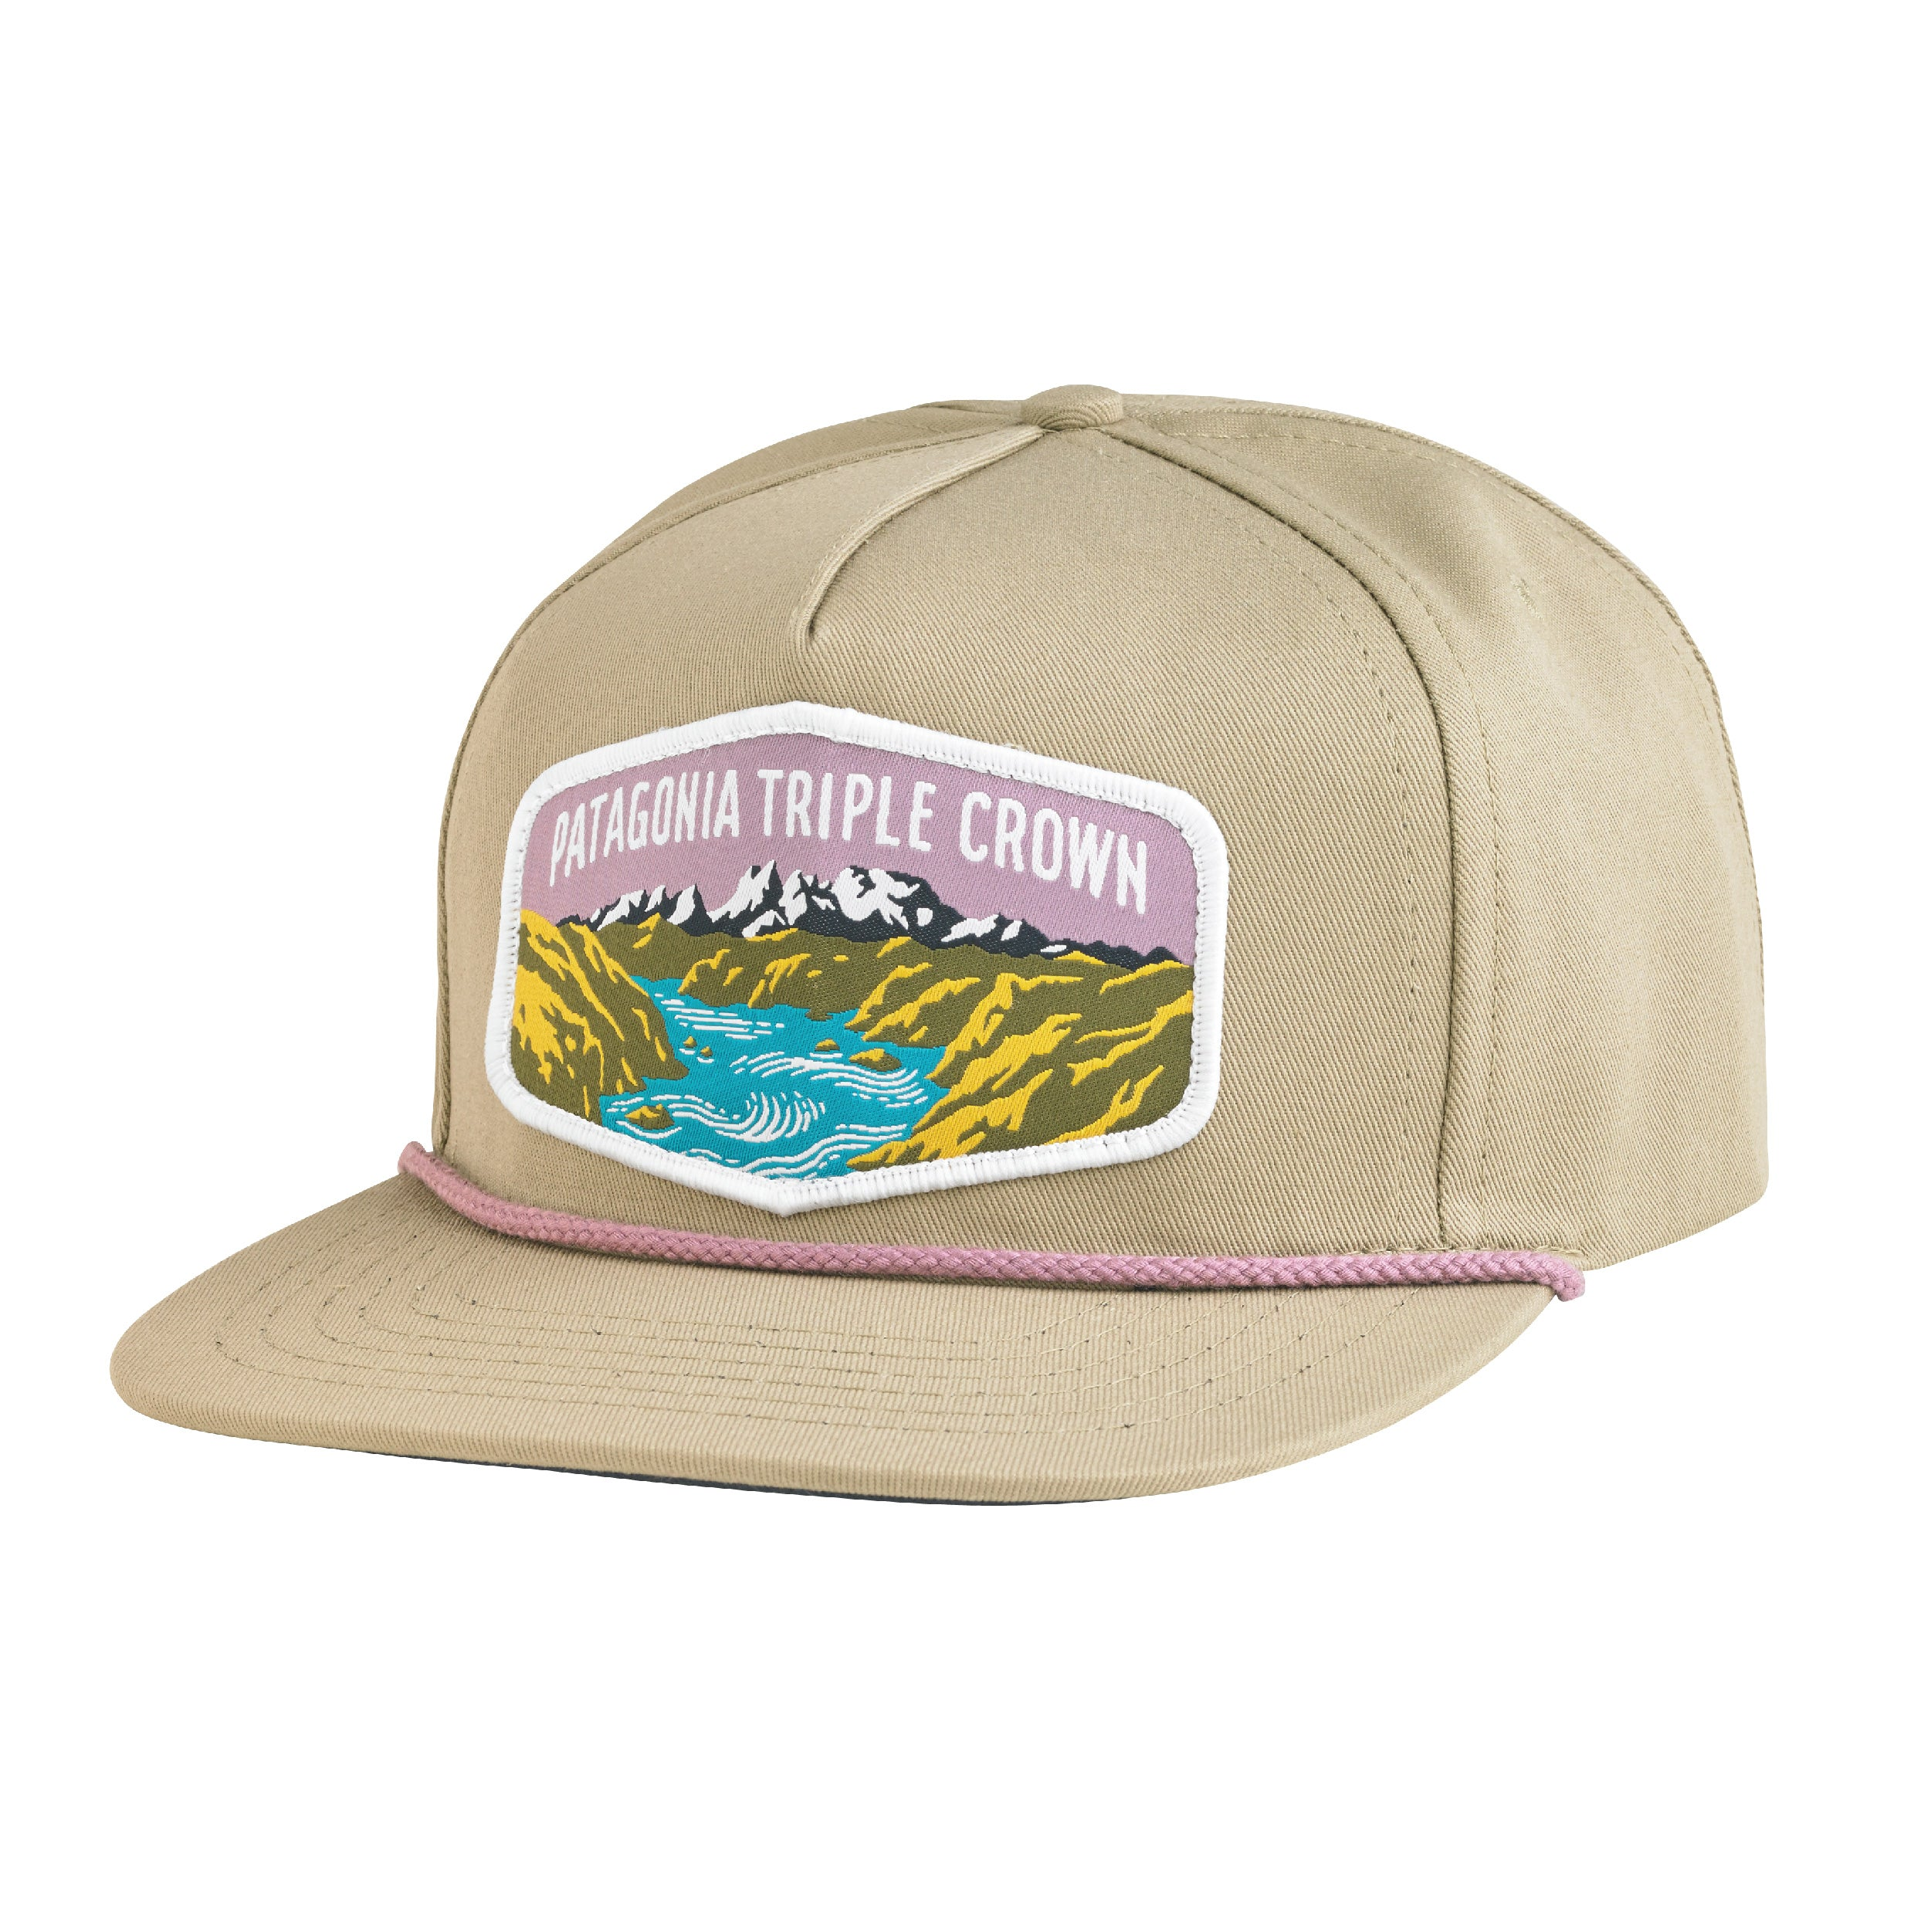 Patagonia Triple Crown Hat – Sendero Provisions Co. 0d22a83e8d1